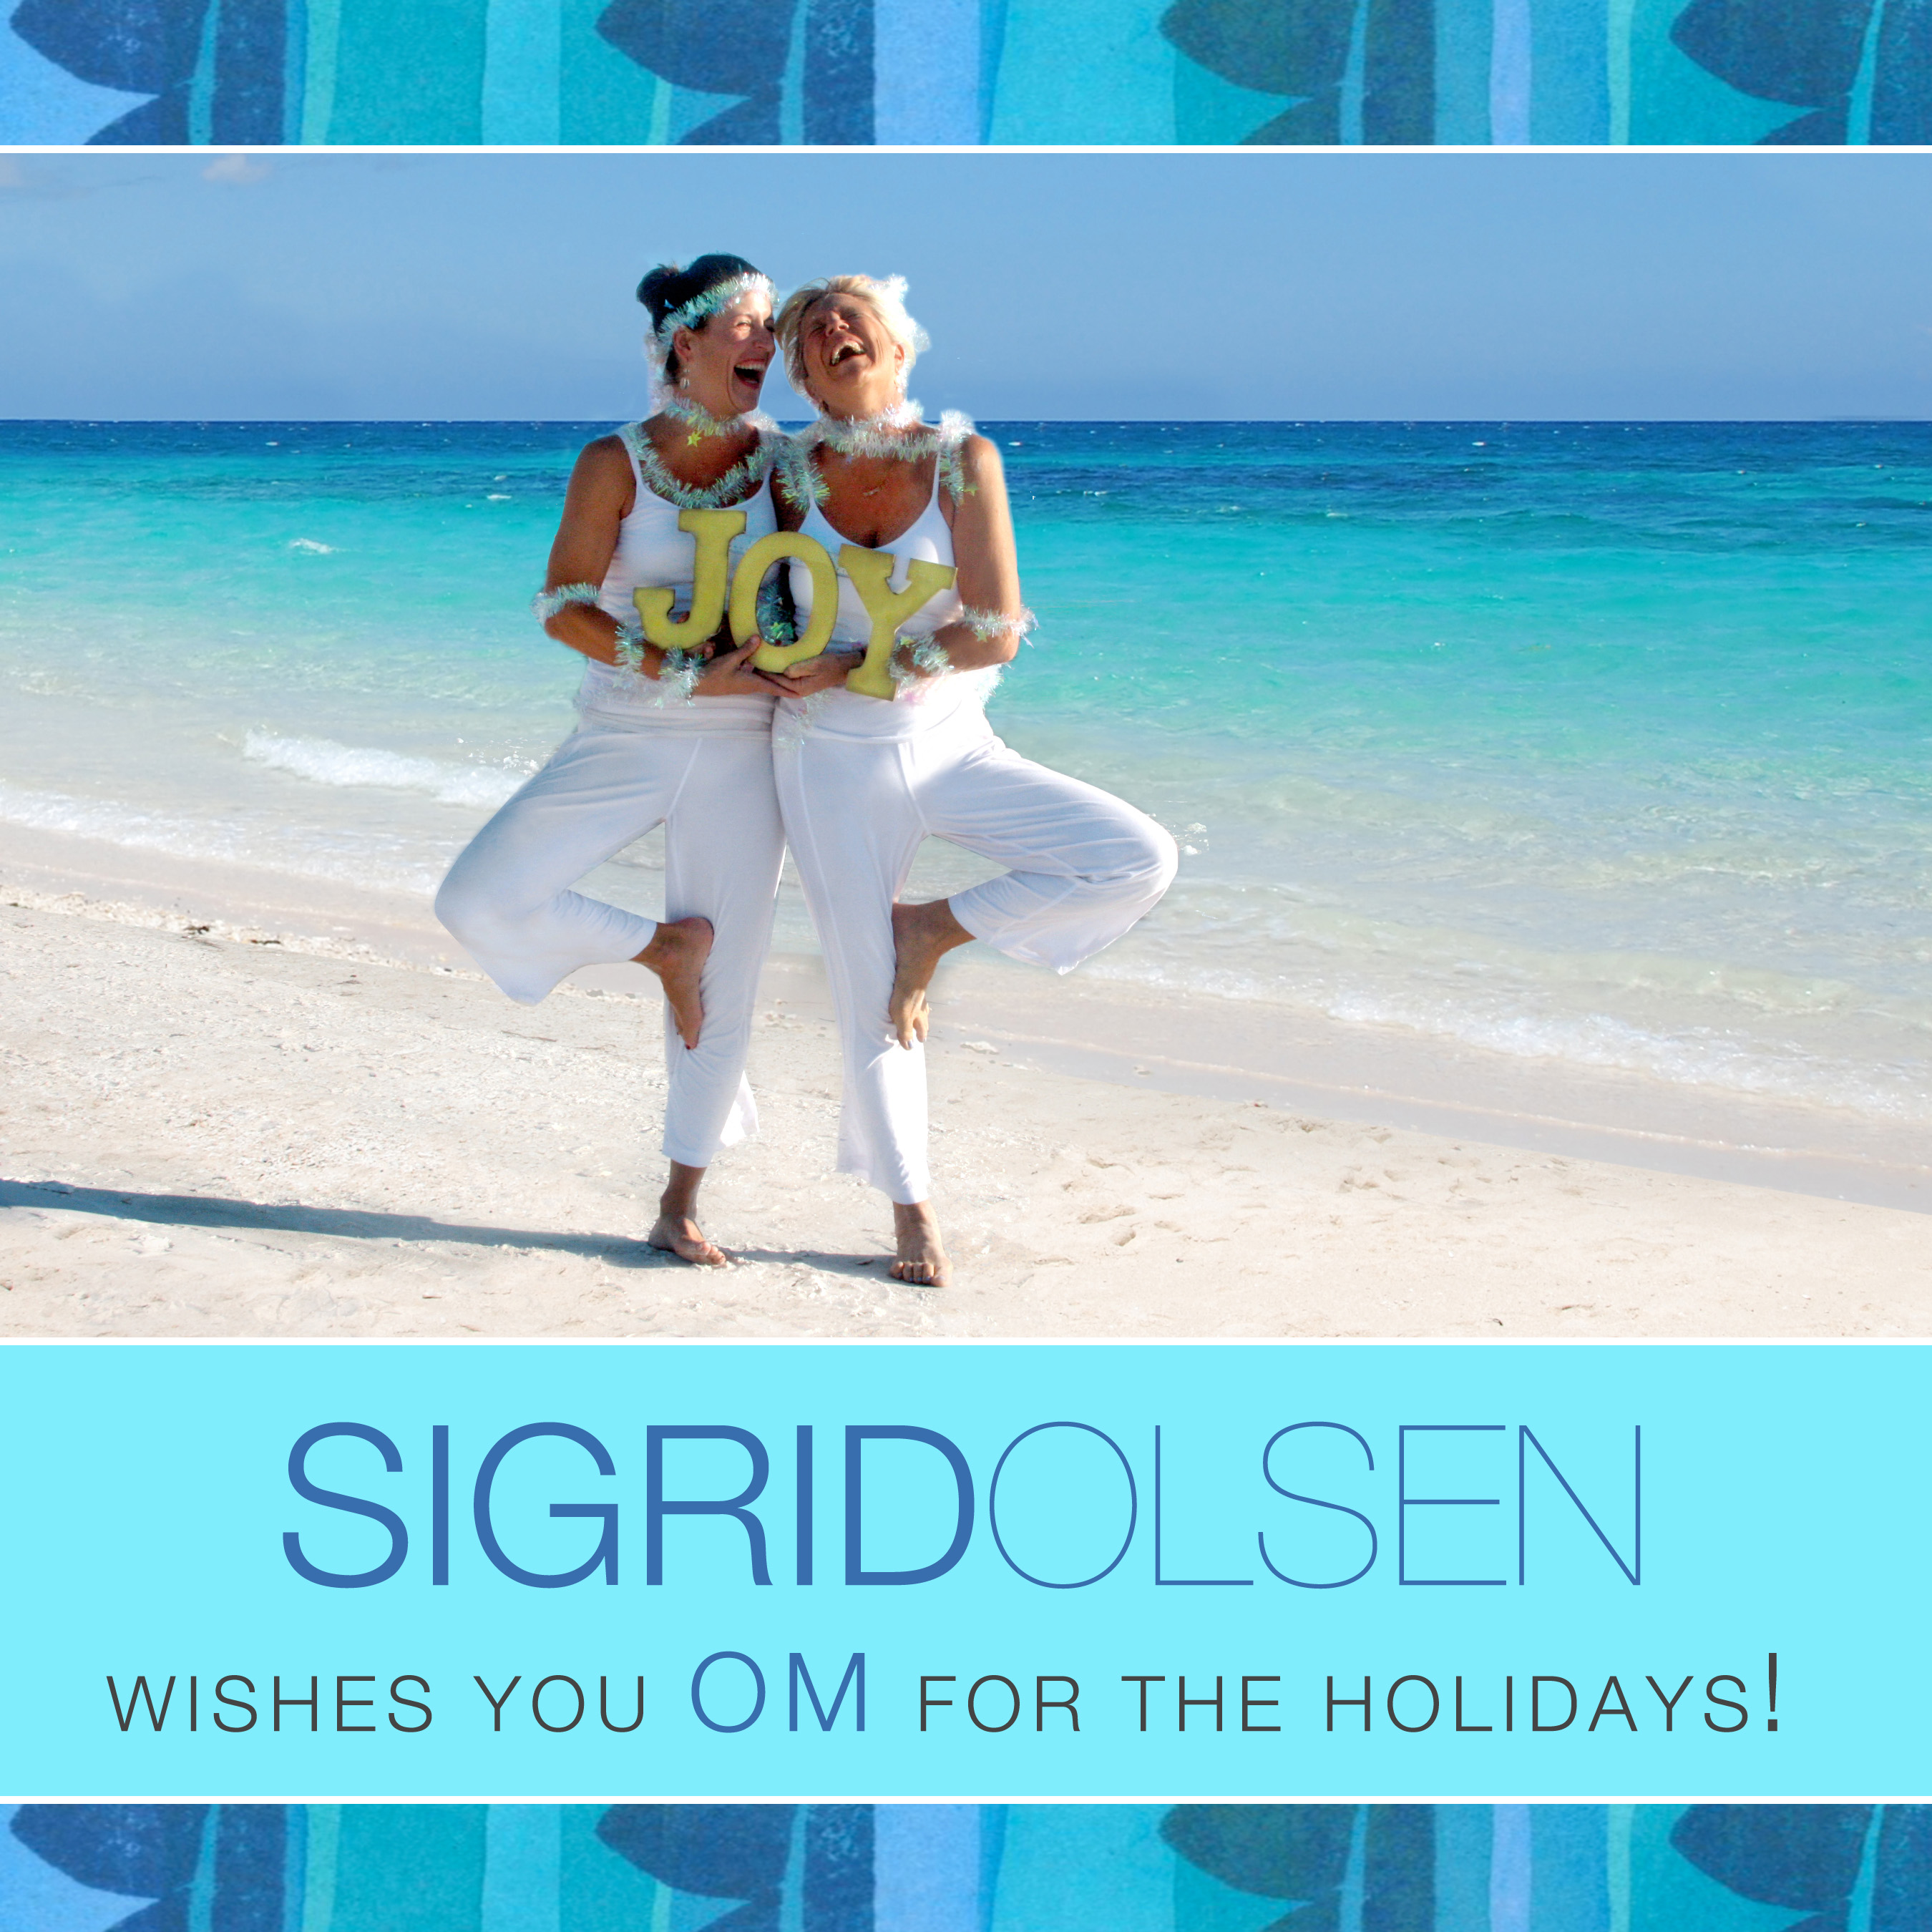 SIGRID OLSEN wishes you OM for the holidays!